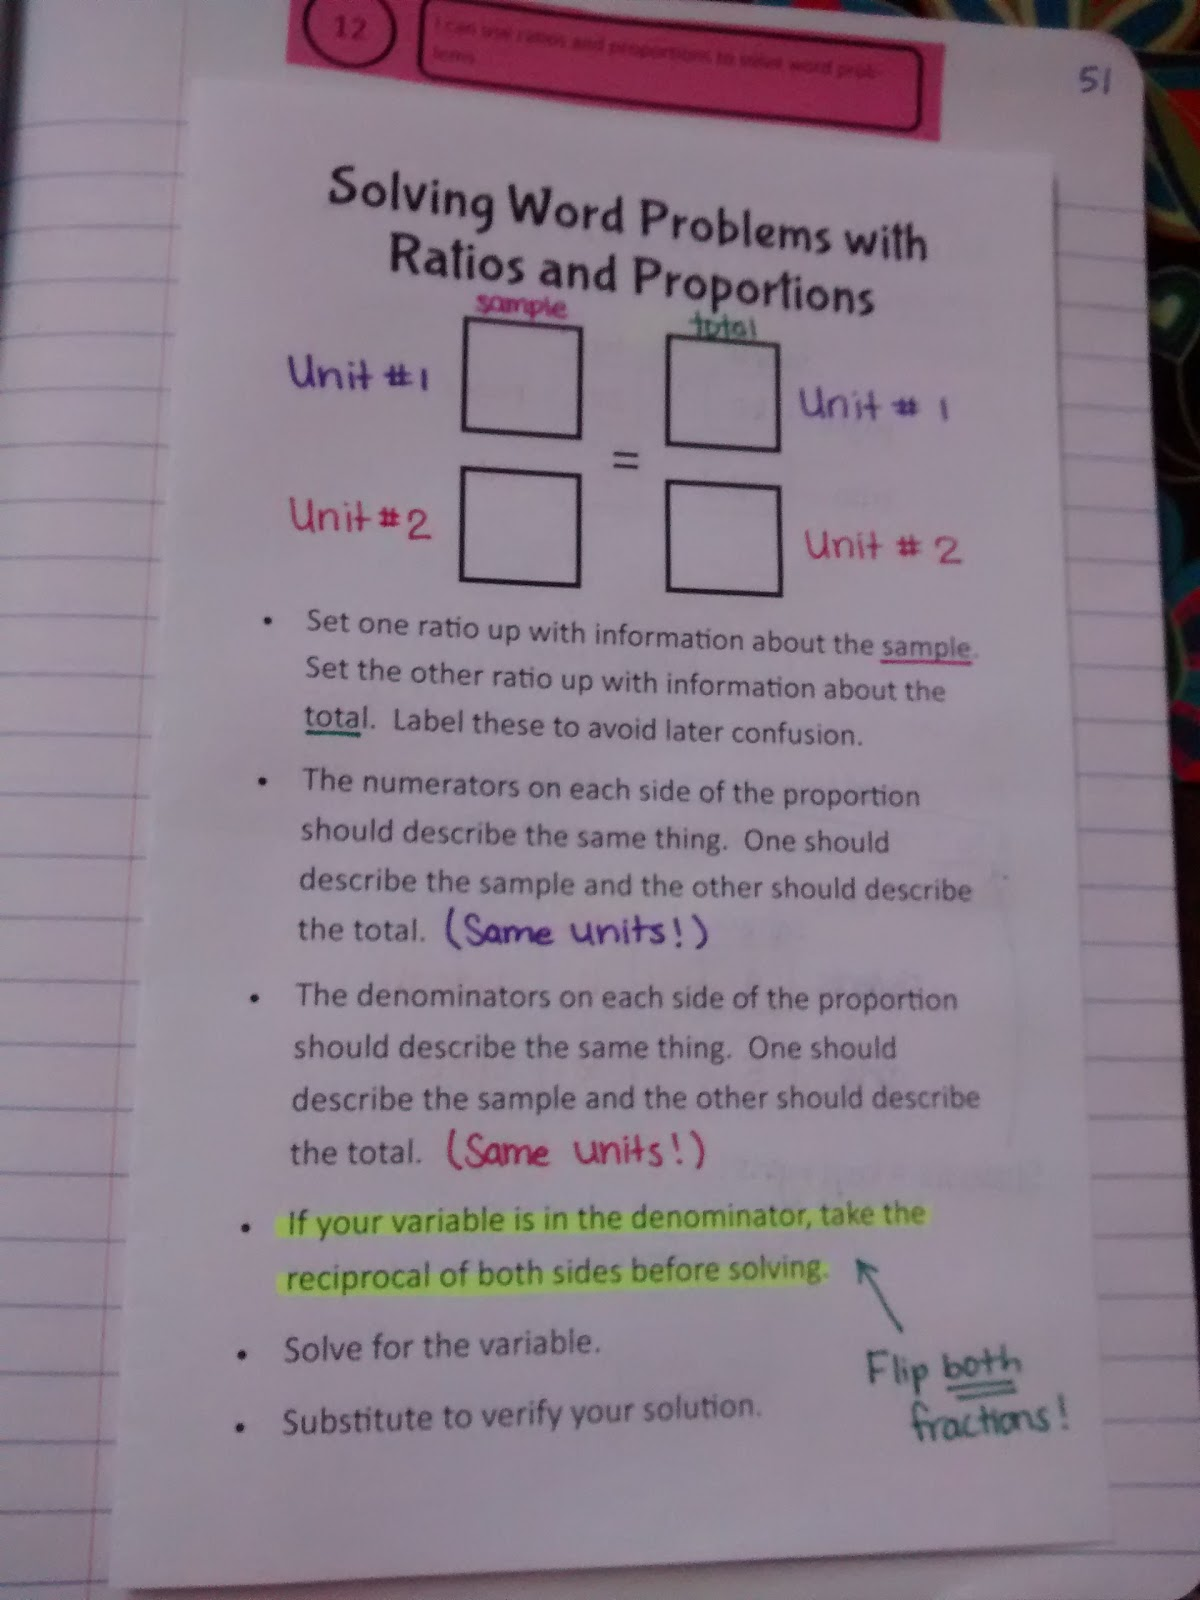 Math Love Solving Word Problems With Ratios And Proportions